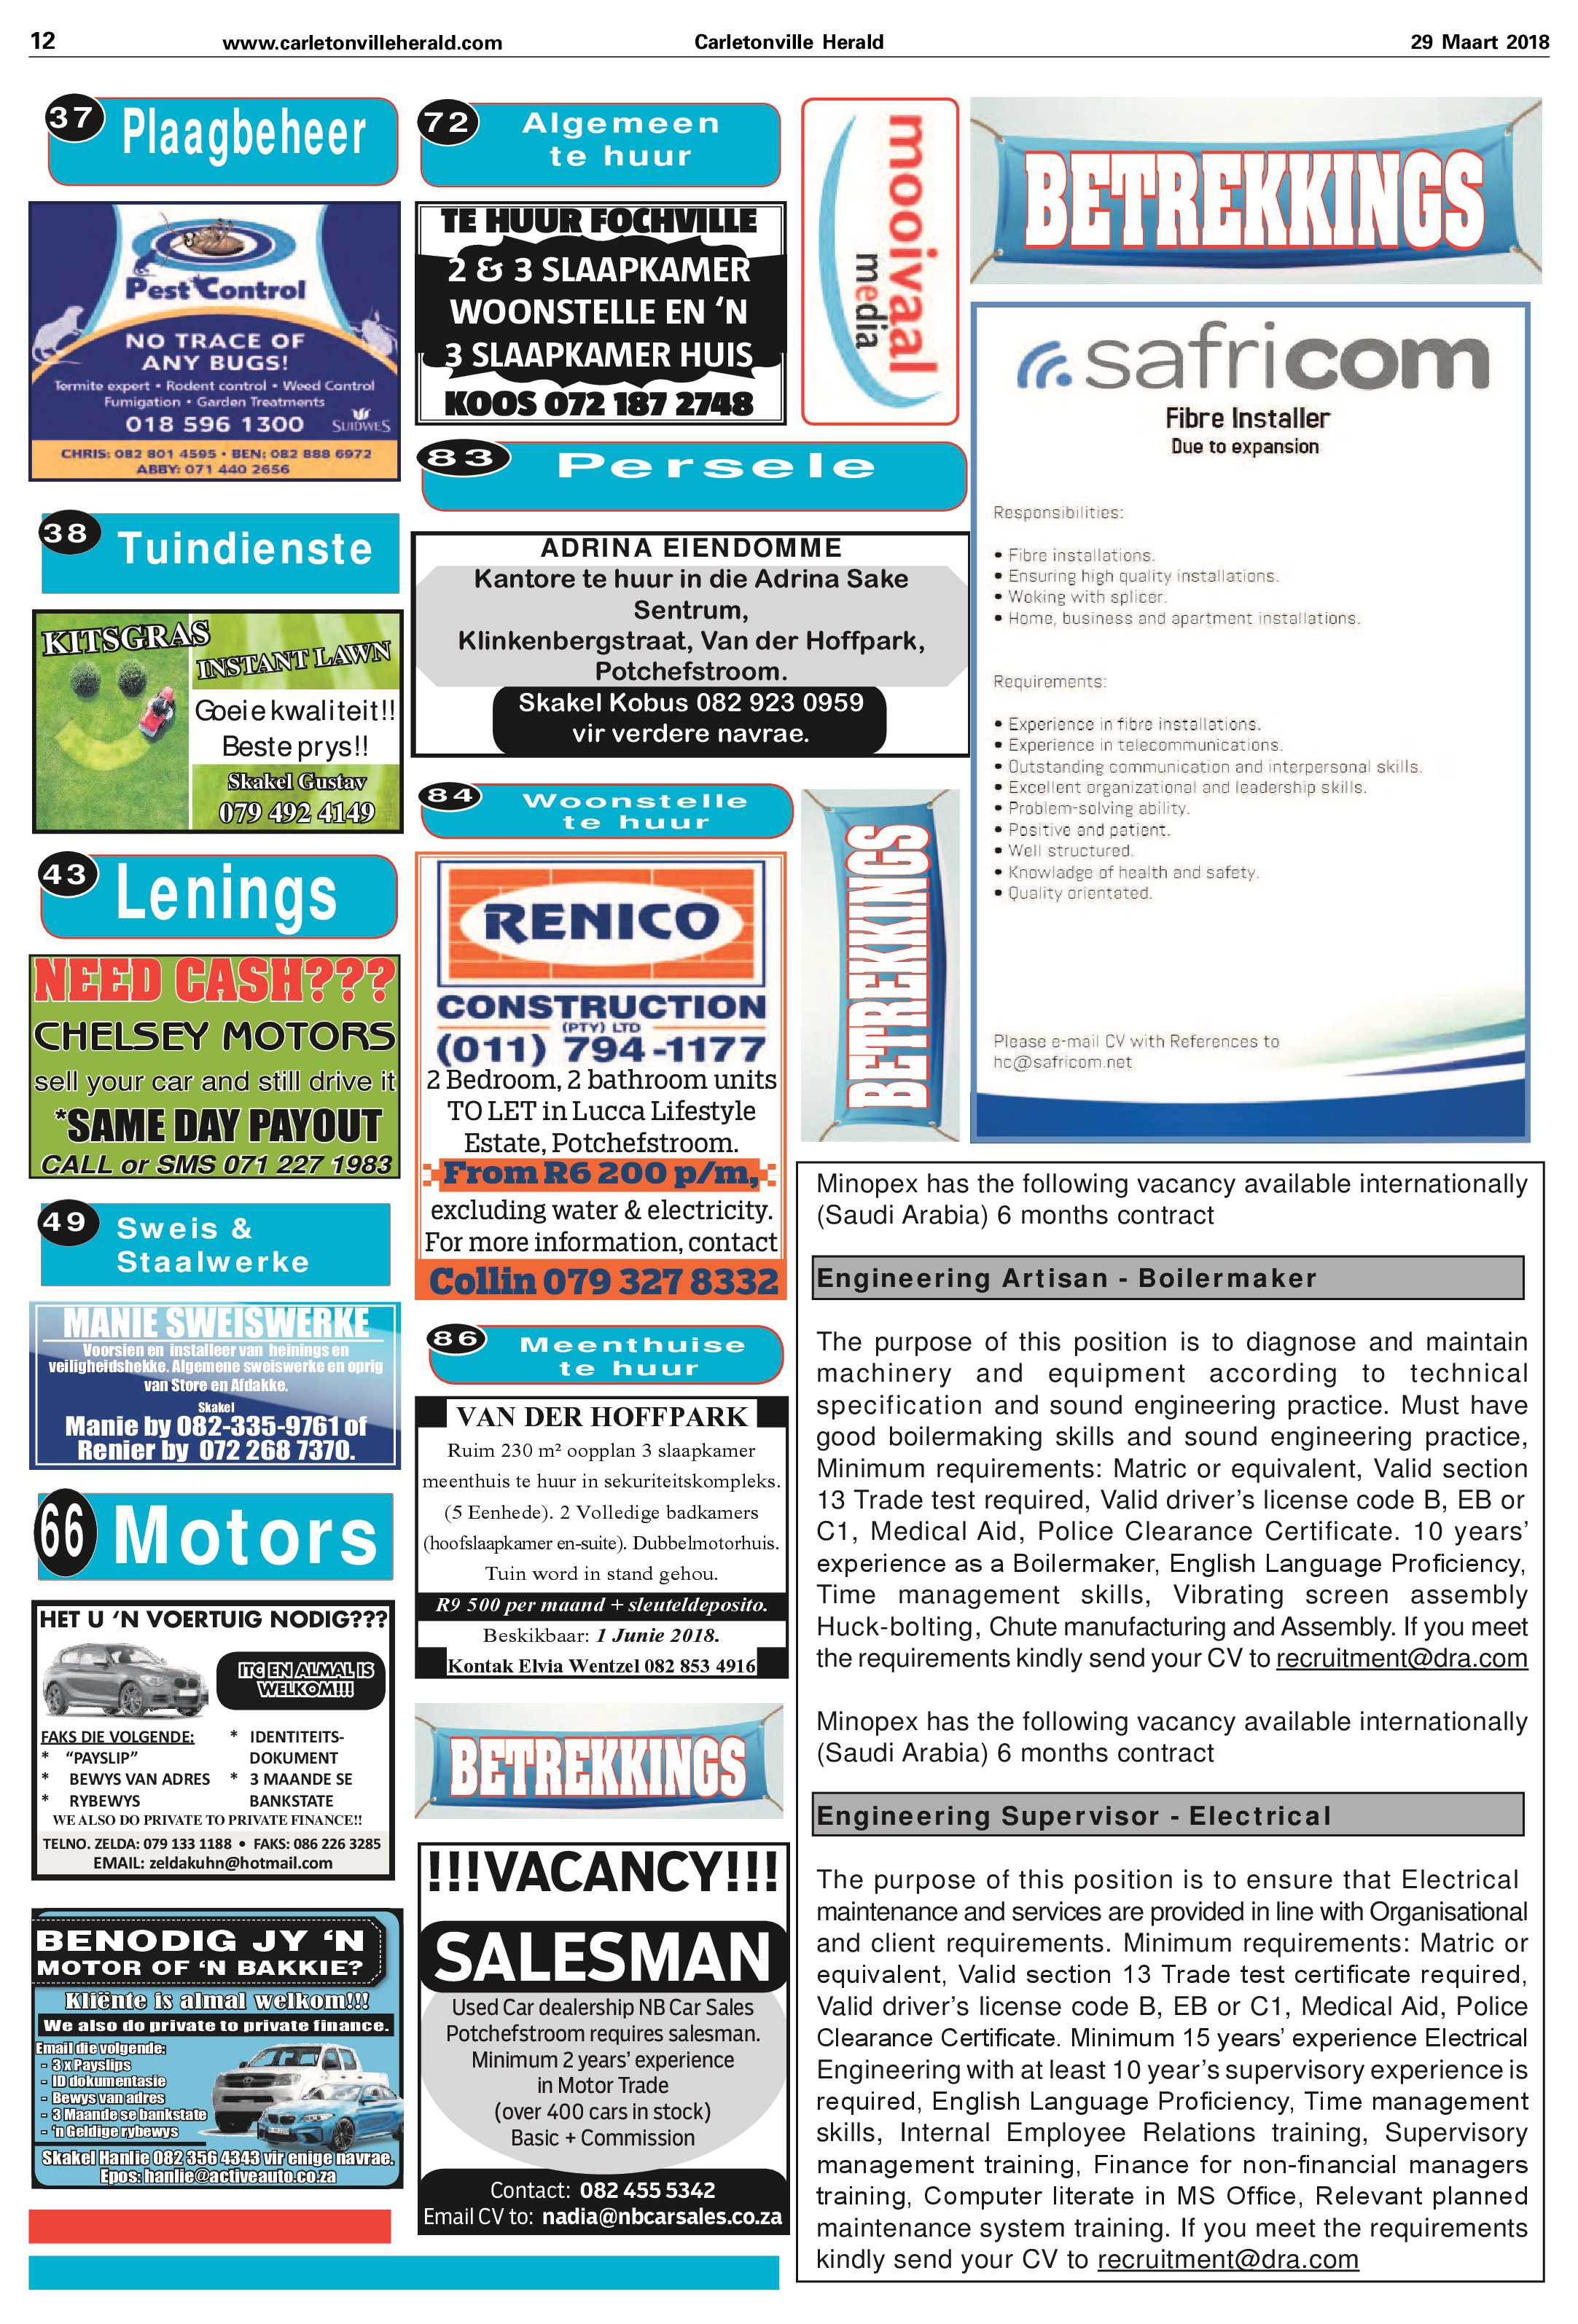 29-march-2018-epapers-page-12